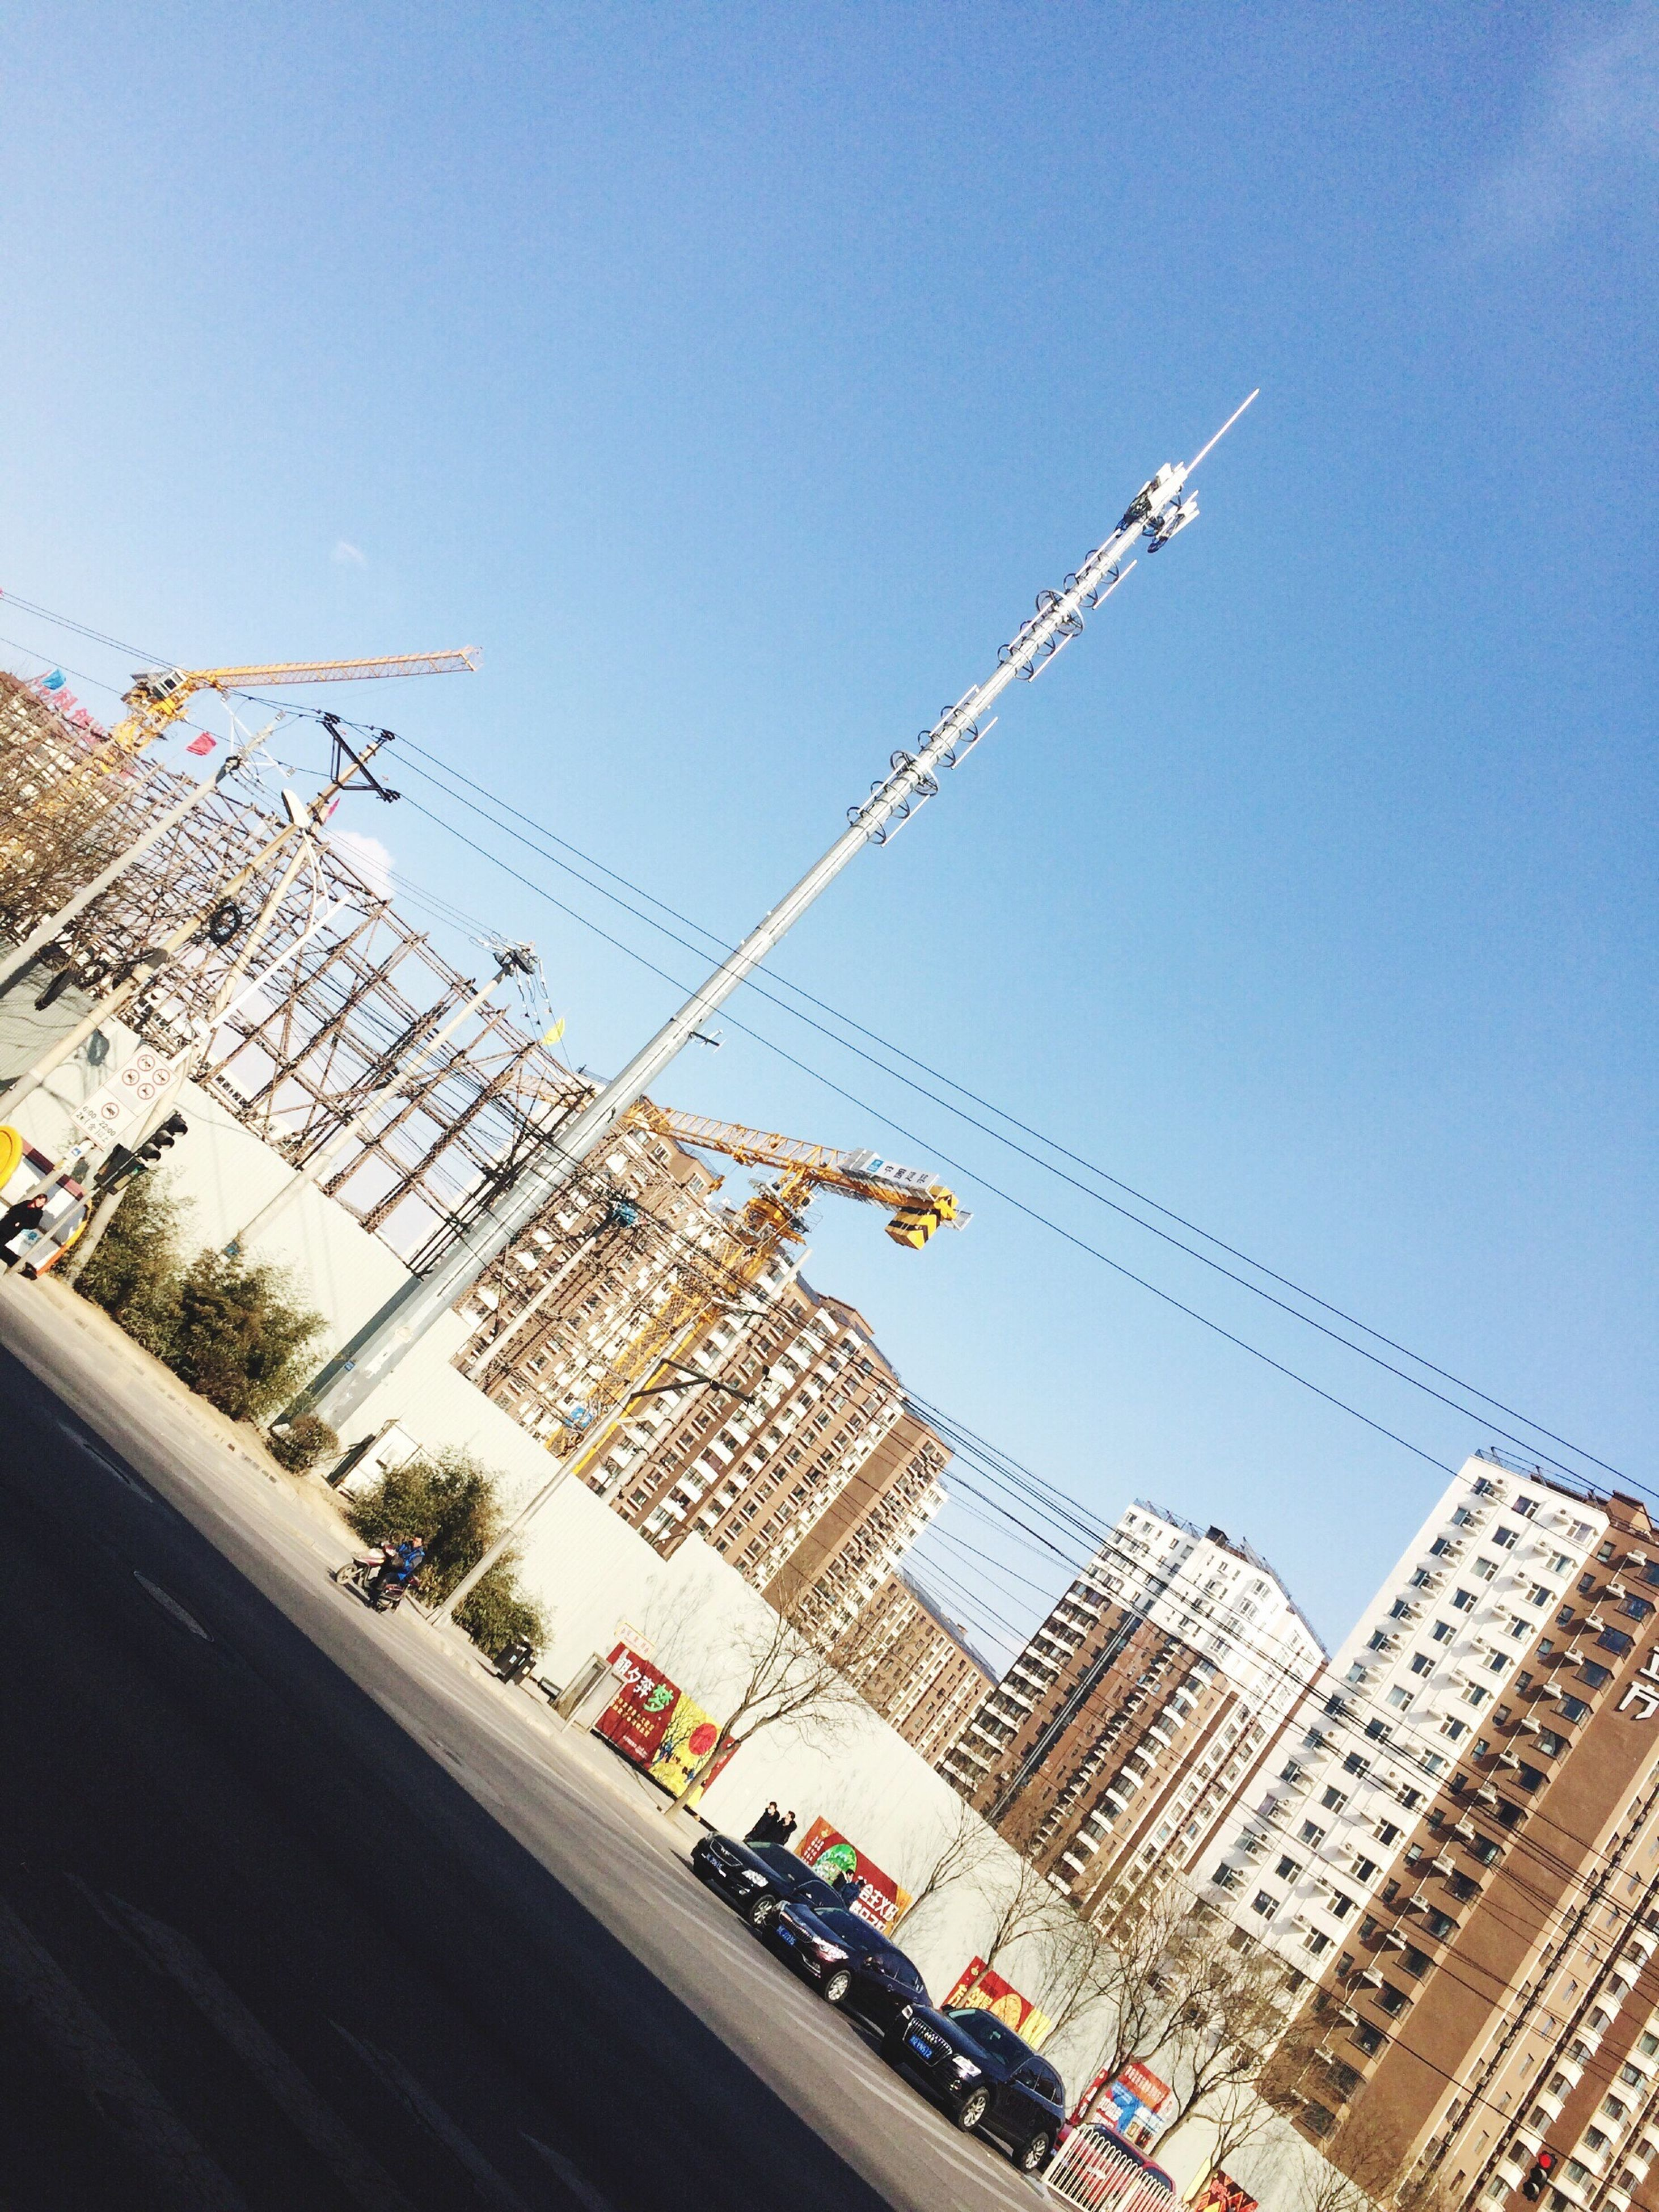 building exterior, architecture, built structure, low angle view, city, clear sky, sky, tall - high, building, city life, skyscraper, crane - construction machinery, day, development, tower, outdoors, tilt, modern, construction site, office building